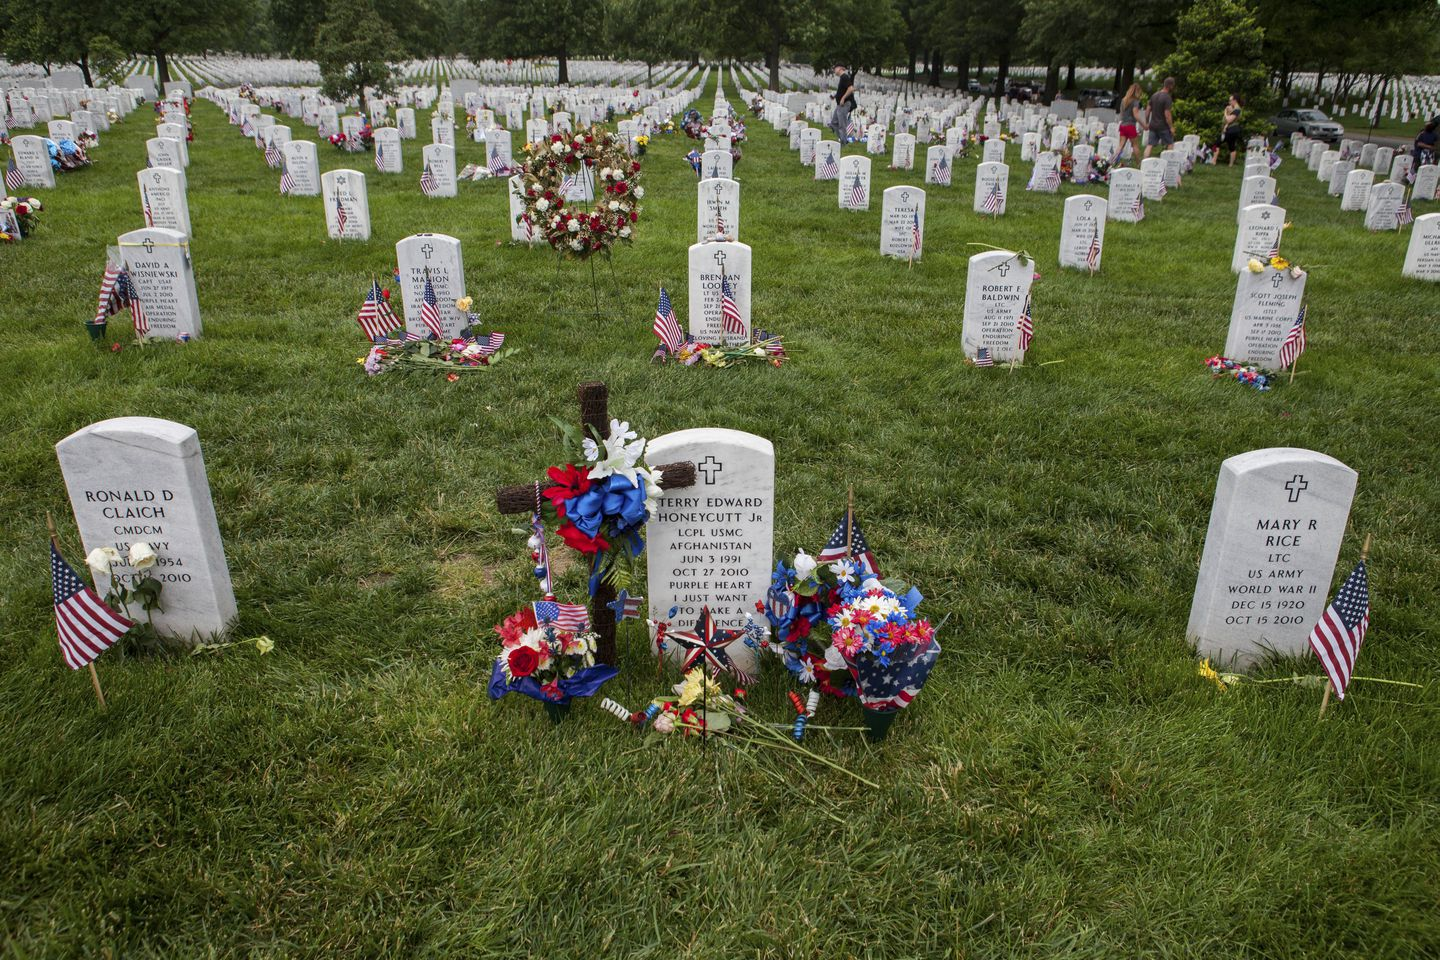 Arlington National Cemetery wants Pokemon Go users to stop ... on the saddest acre section 60, arlington national cemetery section 21, arlington national cemetery section 16, arlington national cemetery section 59, arlington national cemetery section 2, arlington national cemetery section 66, arlington national cemetery section 64, arlington national cemetery section 1,